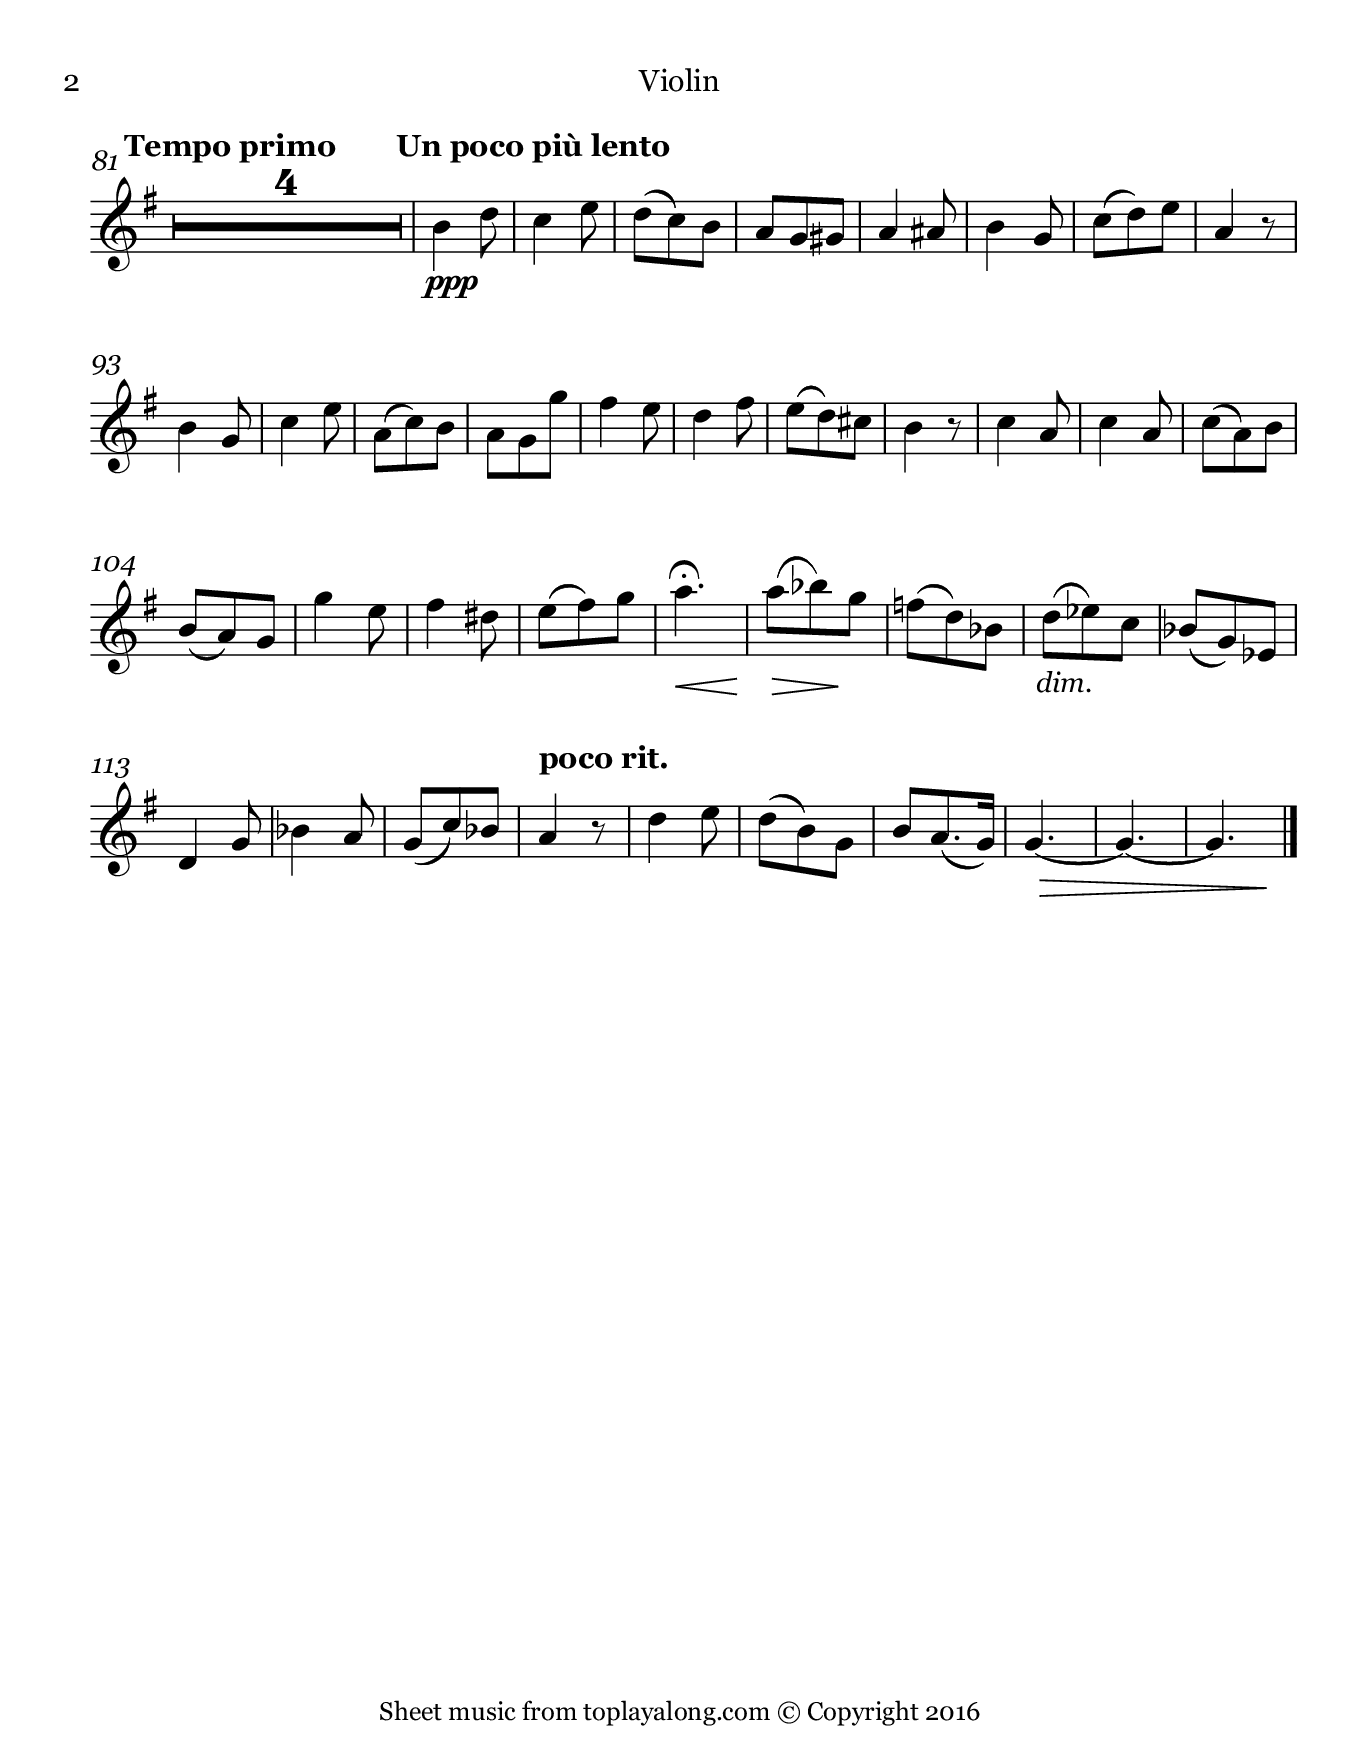 L'adieu des bergers from L'enfance du Christ by Berlioz. Sheet music for Violin, page 2.